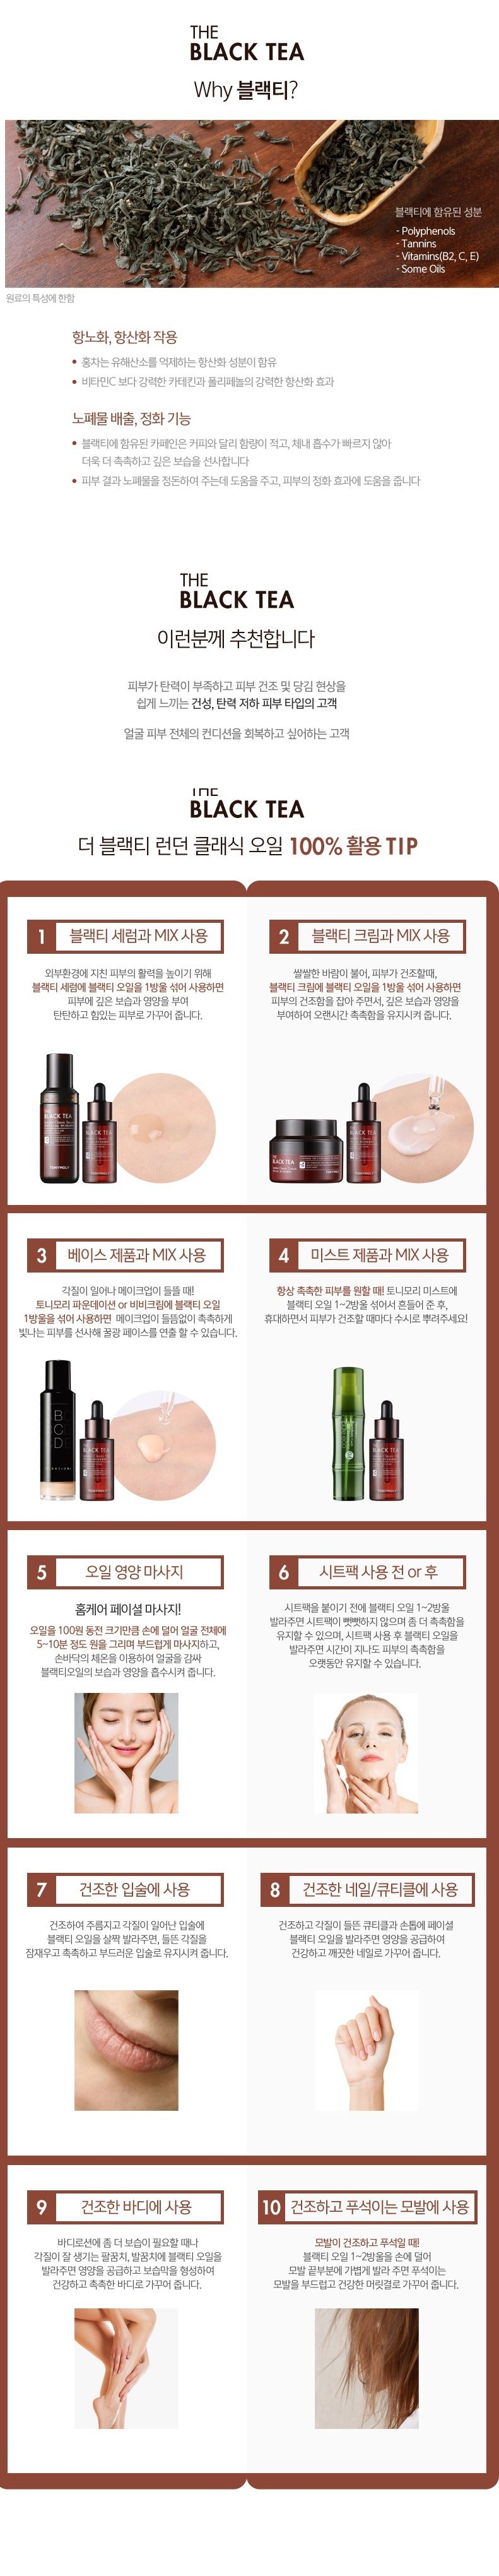 Tony Moly The Black Tea London Classic Oil korean cosmetic skincare product online shop malaysia italy germany2